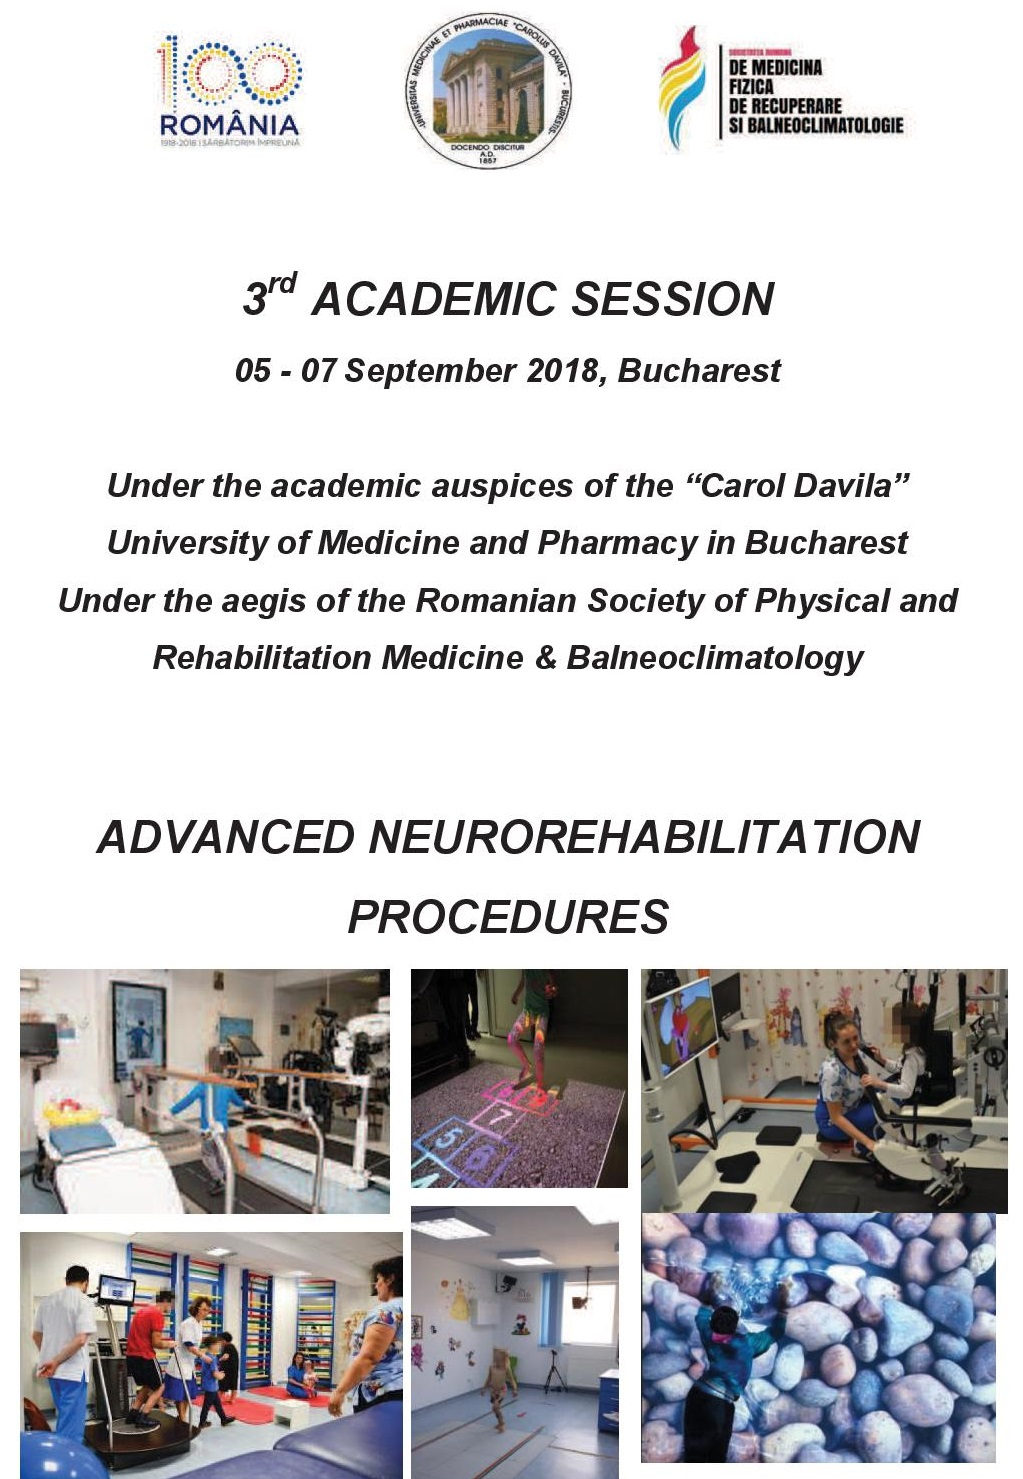 ADVANCED NEUROREHABILITATION PROCEDURES - 3rd ACADEMIC SESSION 05-07 September 2018, Bucharest pg1/6